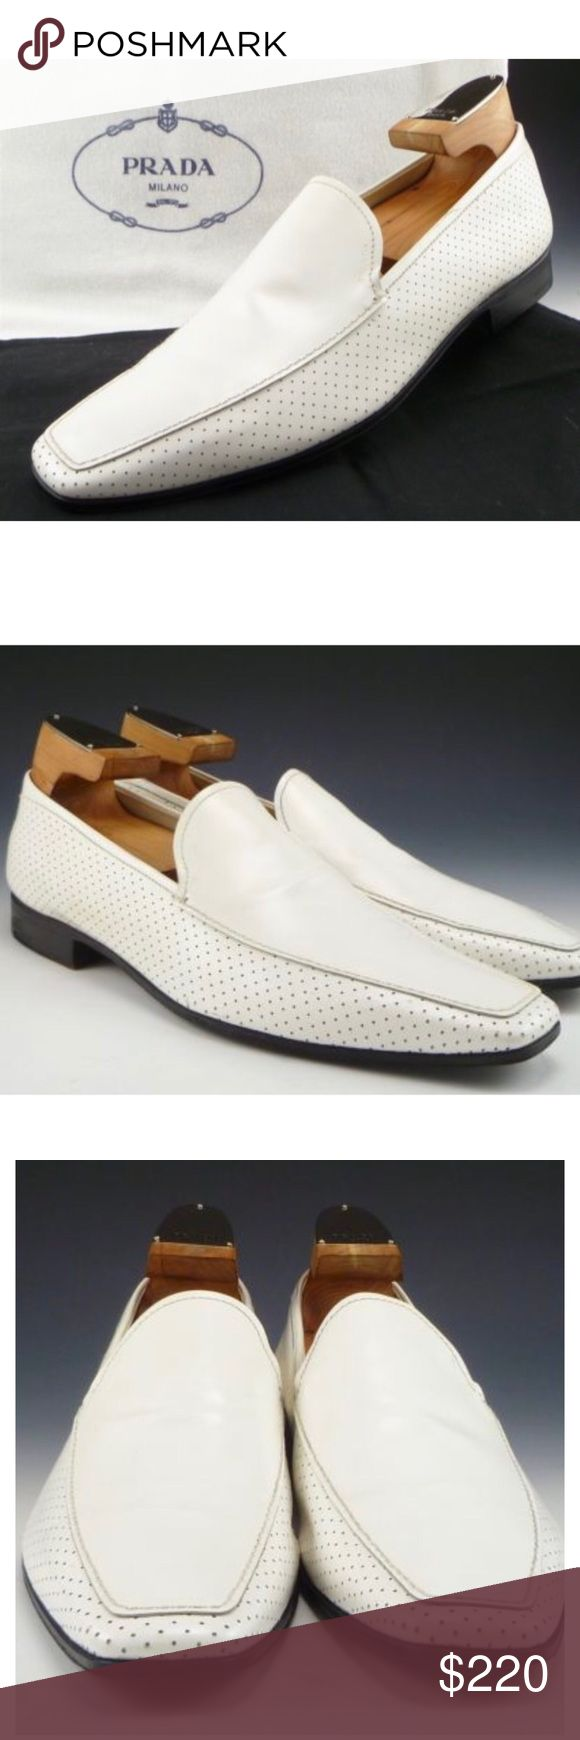 PRADA Men's Driving Loafers size 7.5 Authentic Iconic Prada white Leather loafers size 7.5 Prada  Shoes Loafers & Slip-Ons